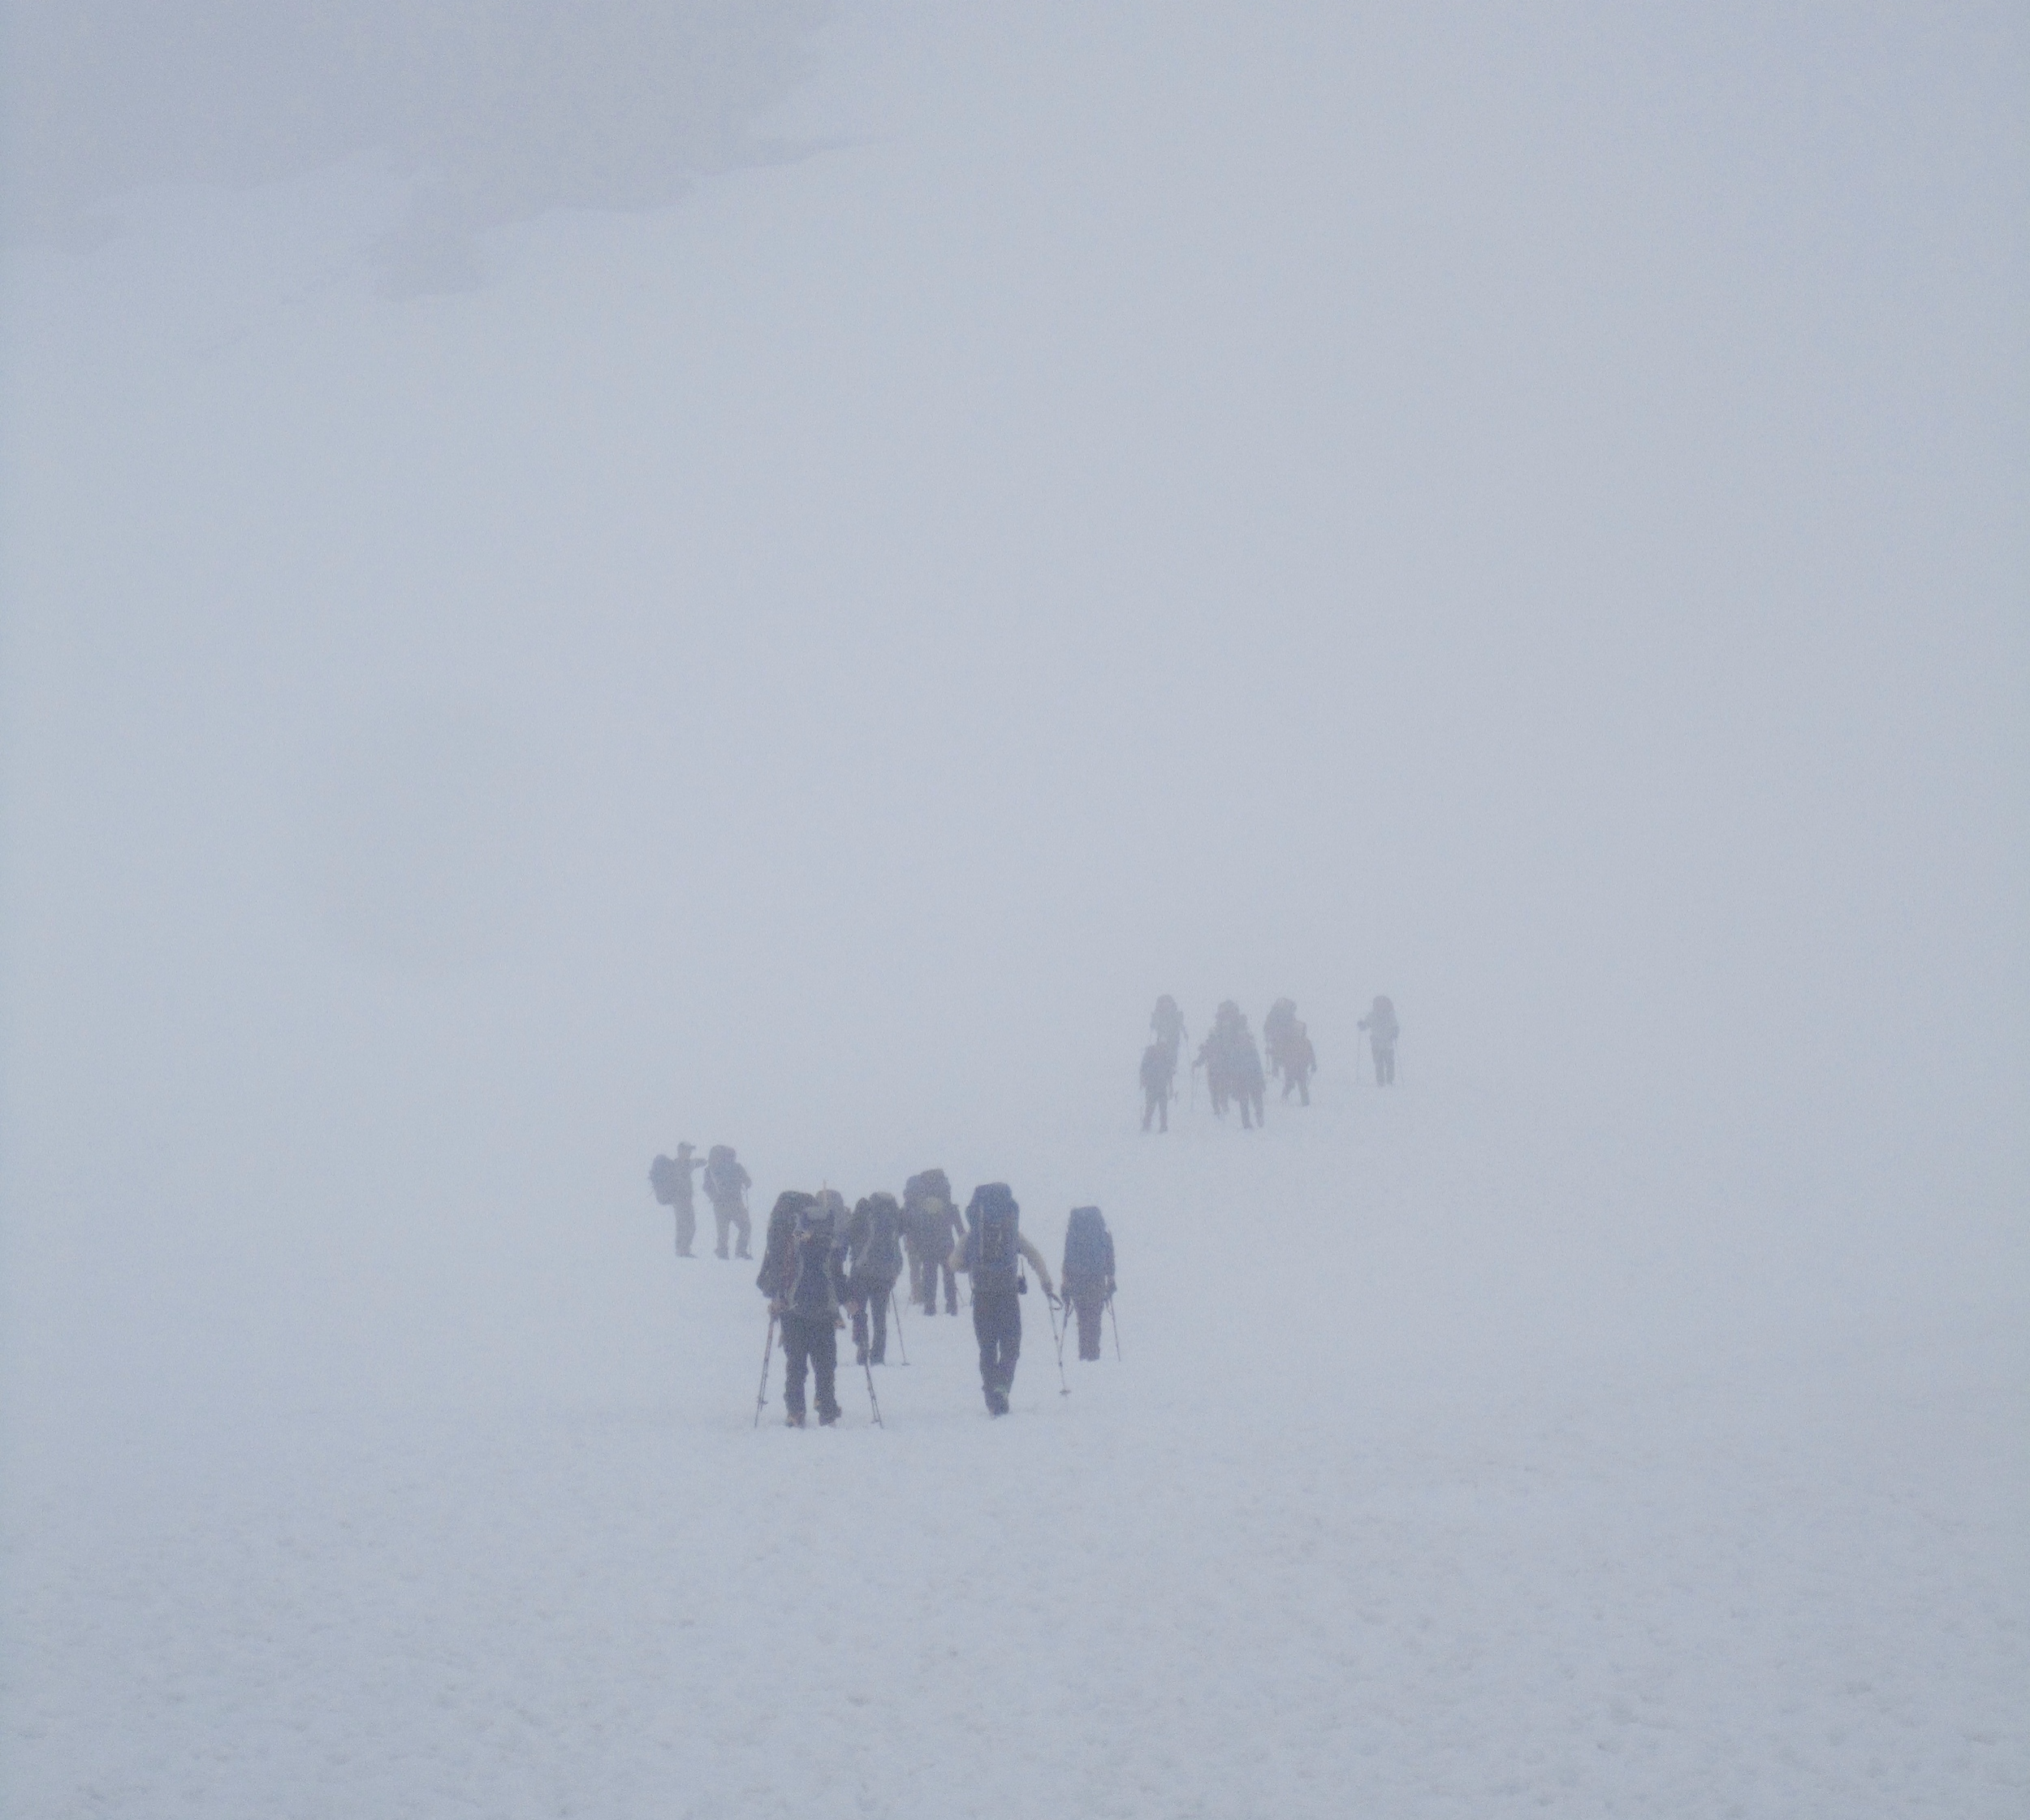 Groups of hikers/climbers taking on Mt Rainier